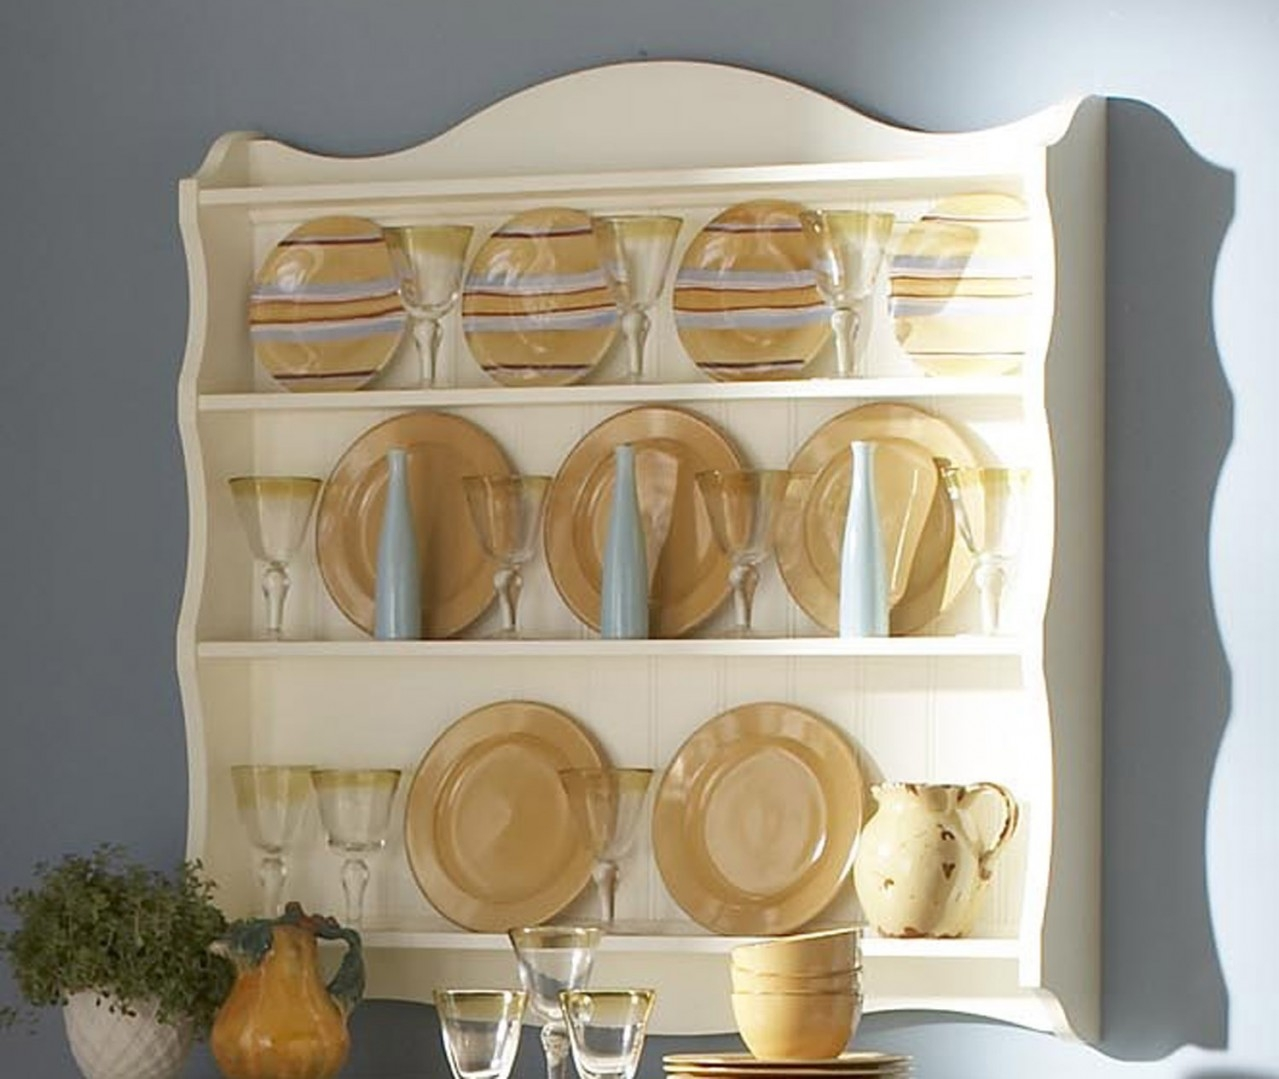 Decorative Plates For Kitchen Display